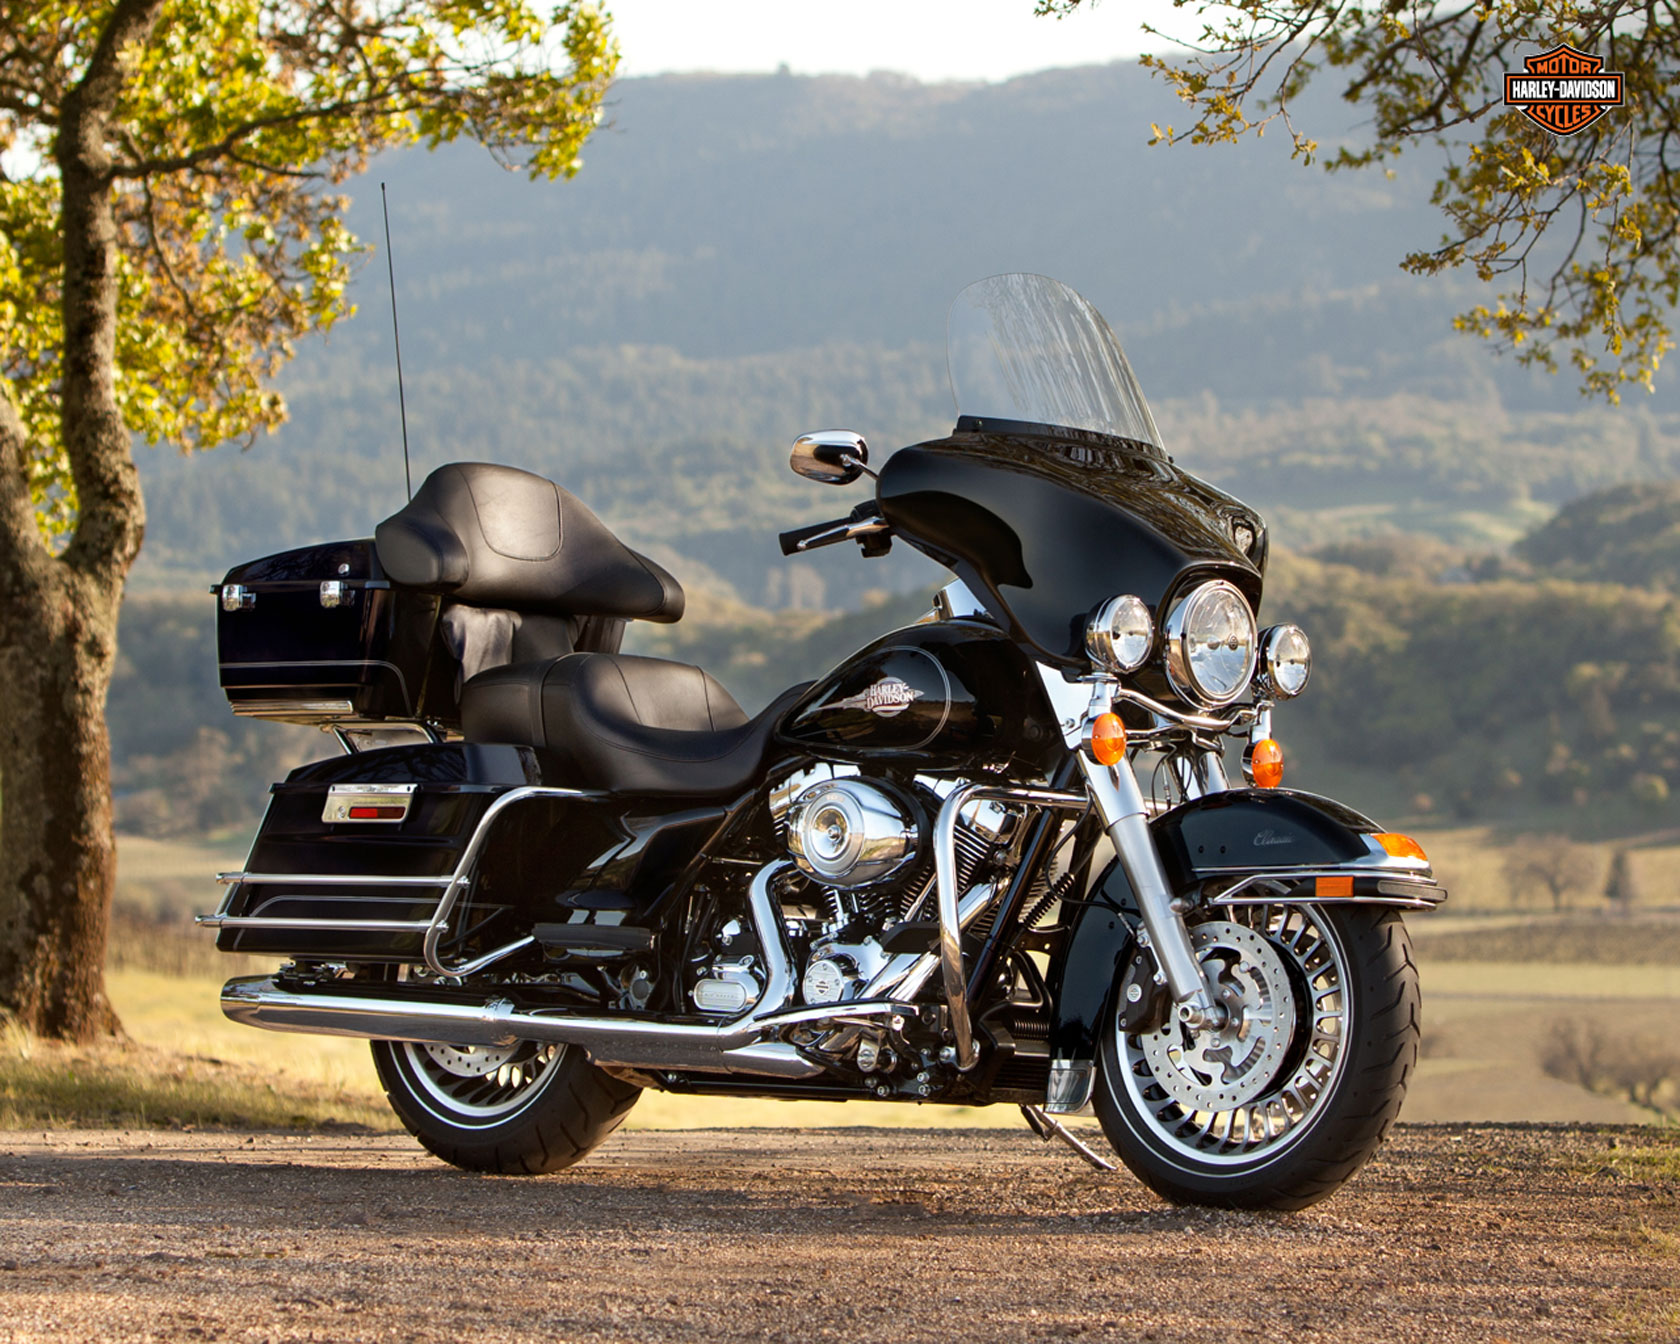 Harley-Davidson FLHTC Electra Glide Classic 2010 pics #19047